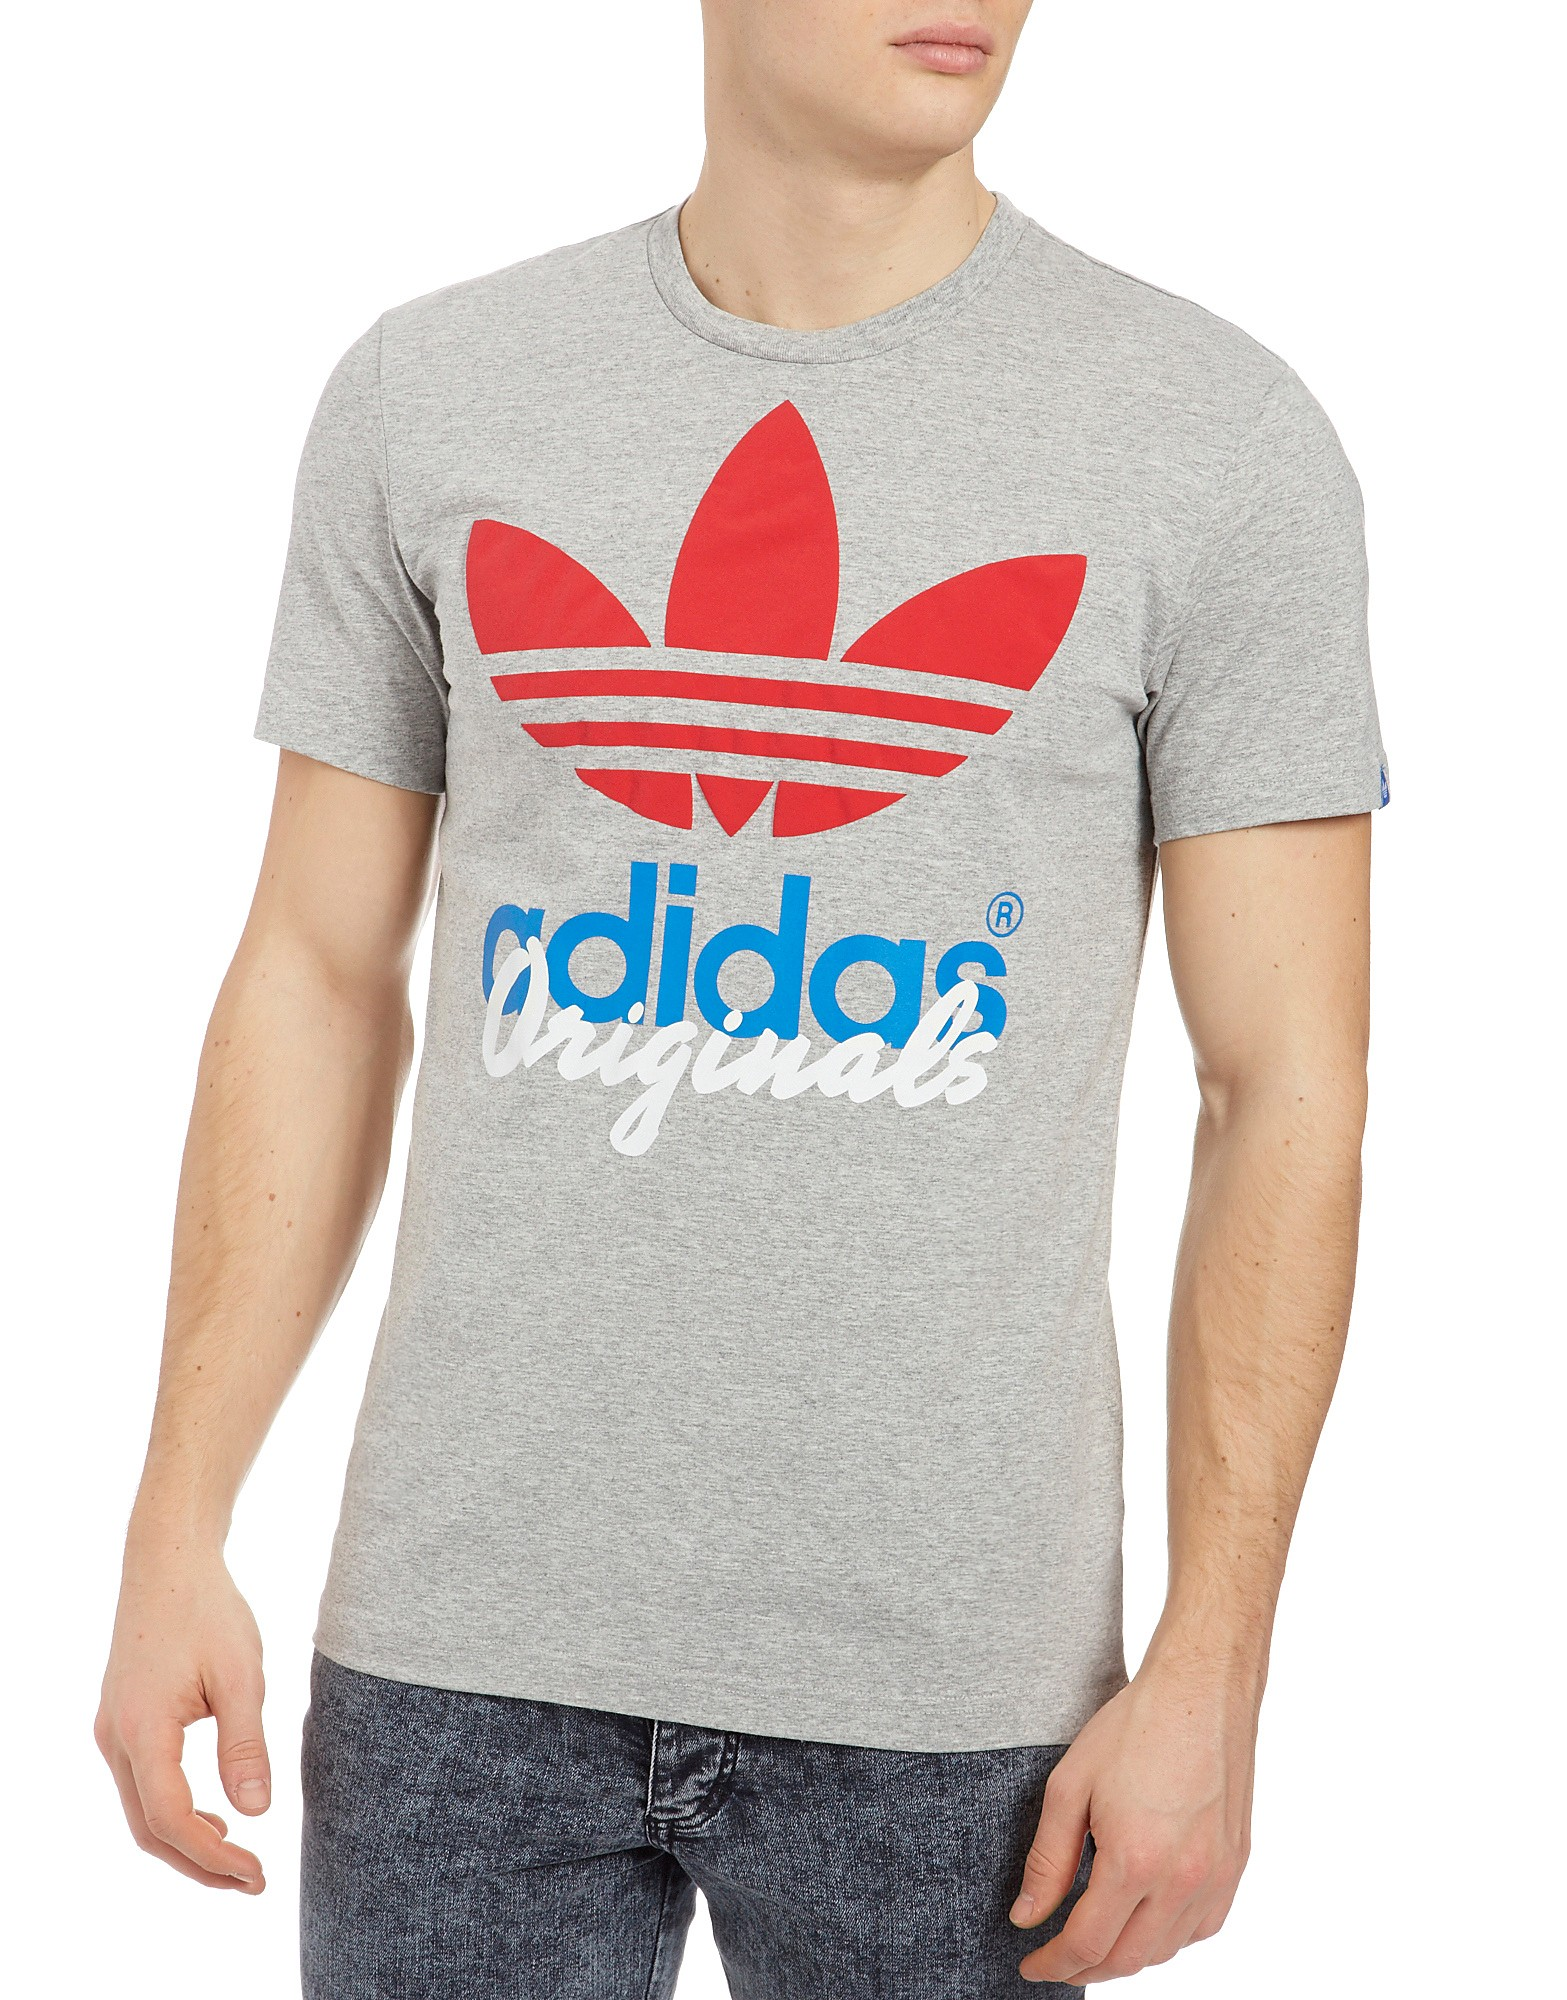 adidas Originals Trefoil Blend 2 T-Shirt product image